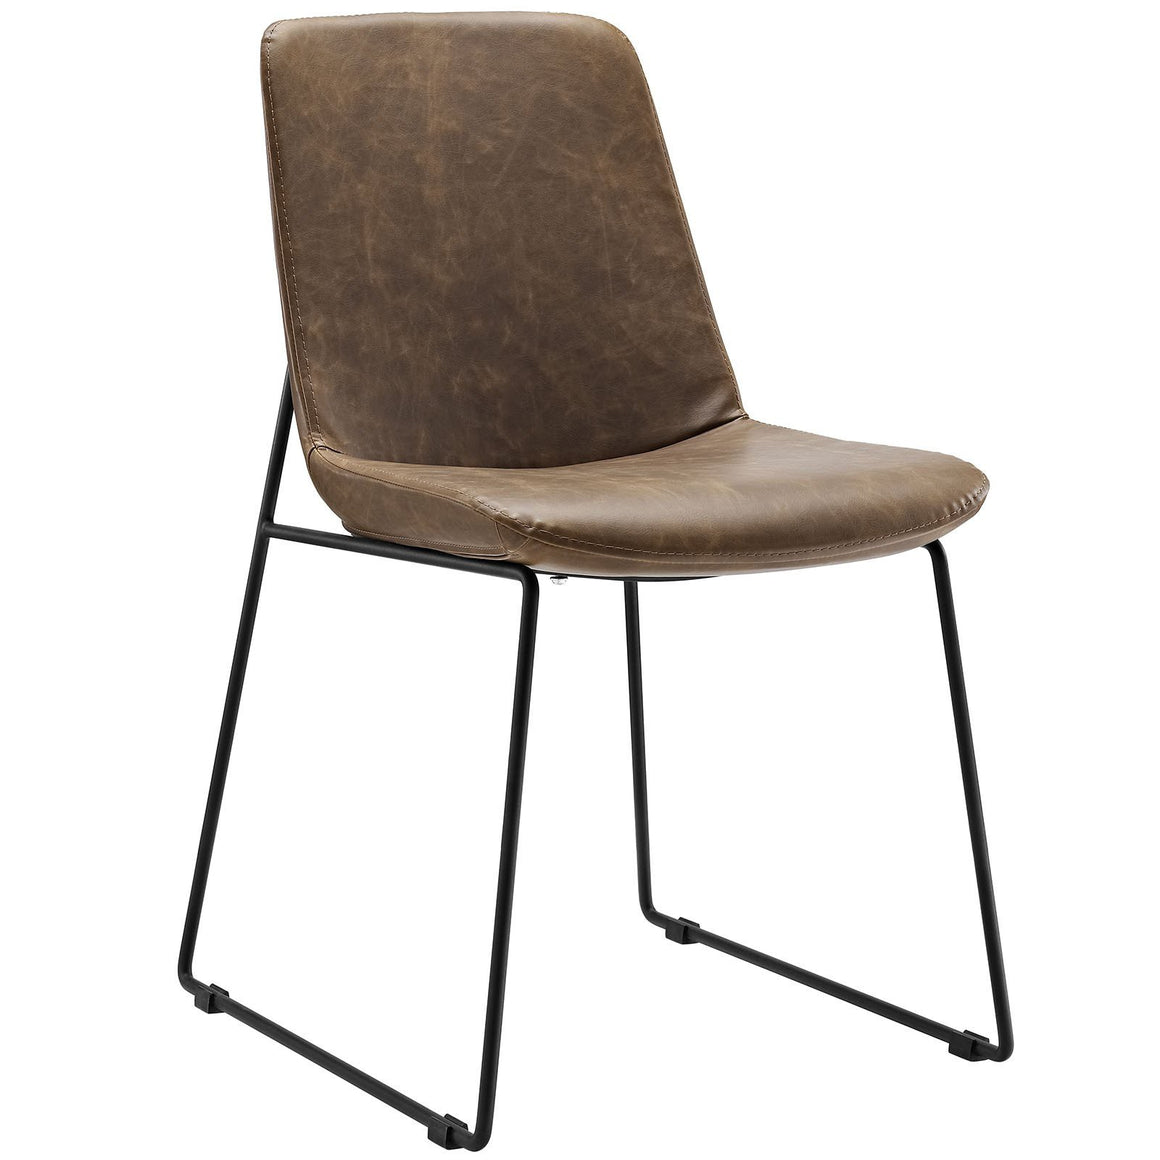 Allure Vinyl Dining Chair Chairs Free Shipping